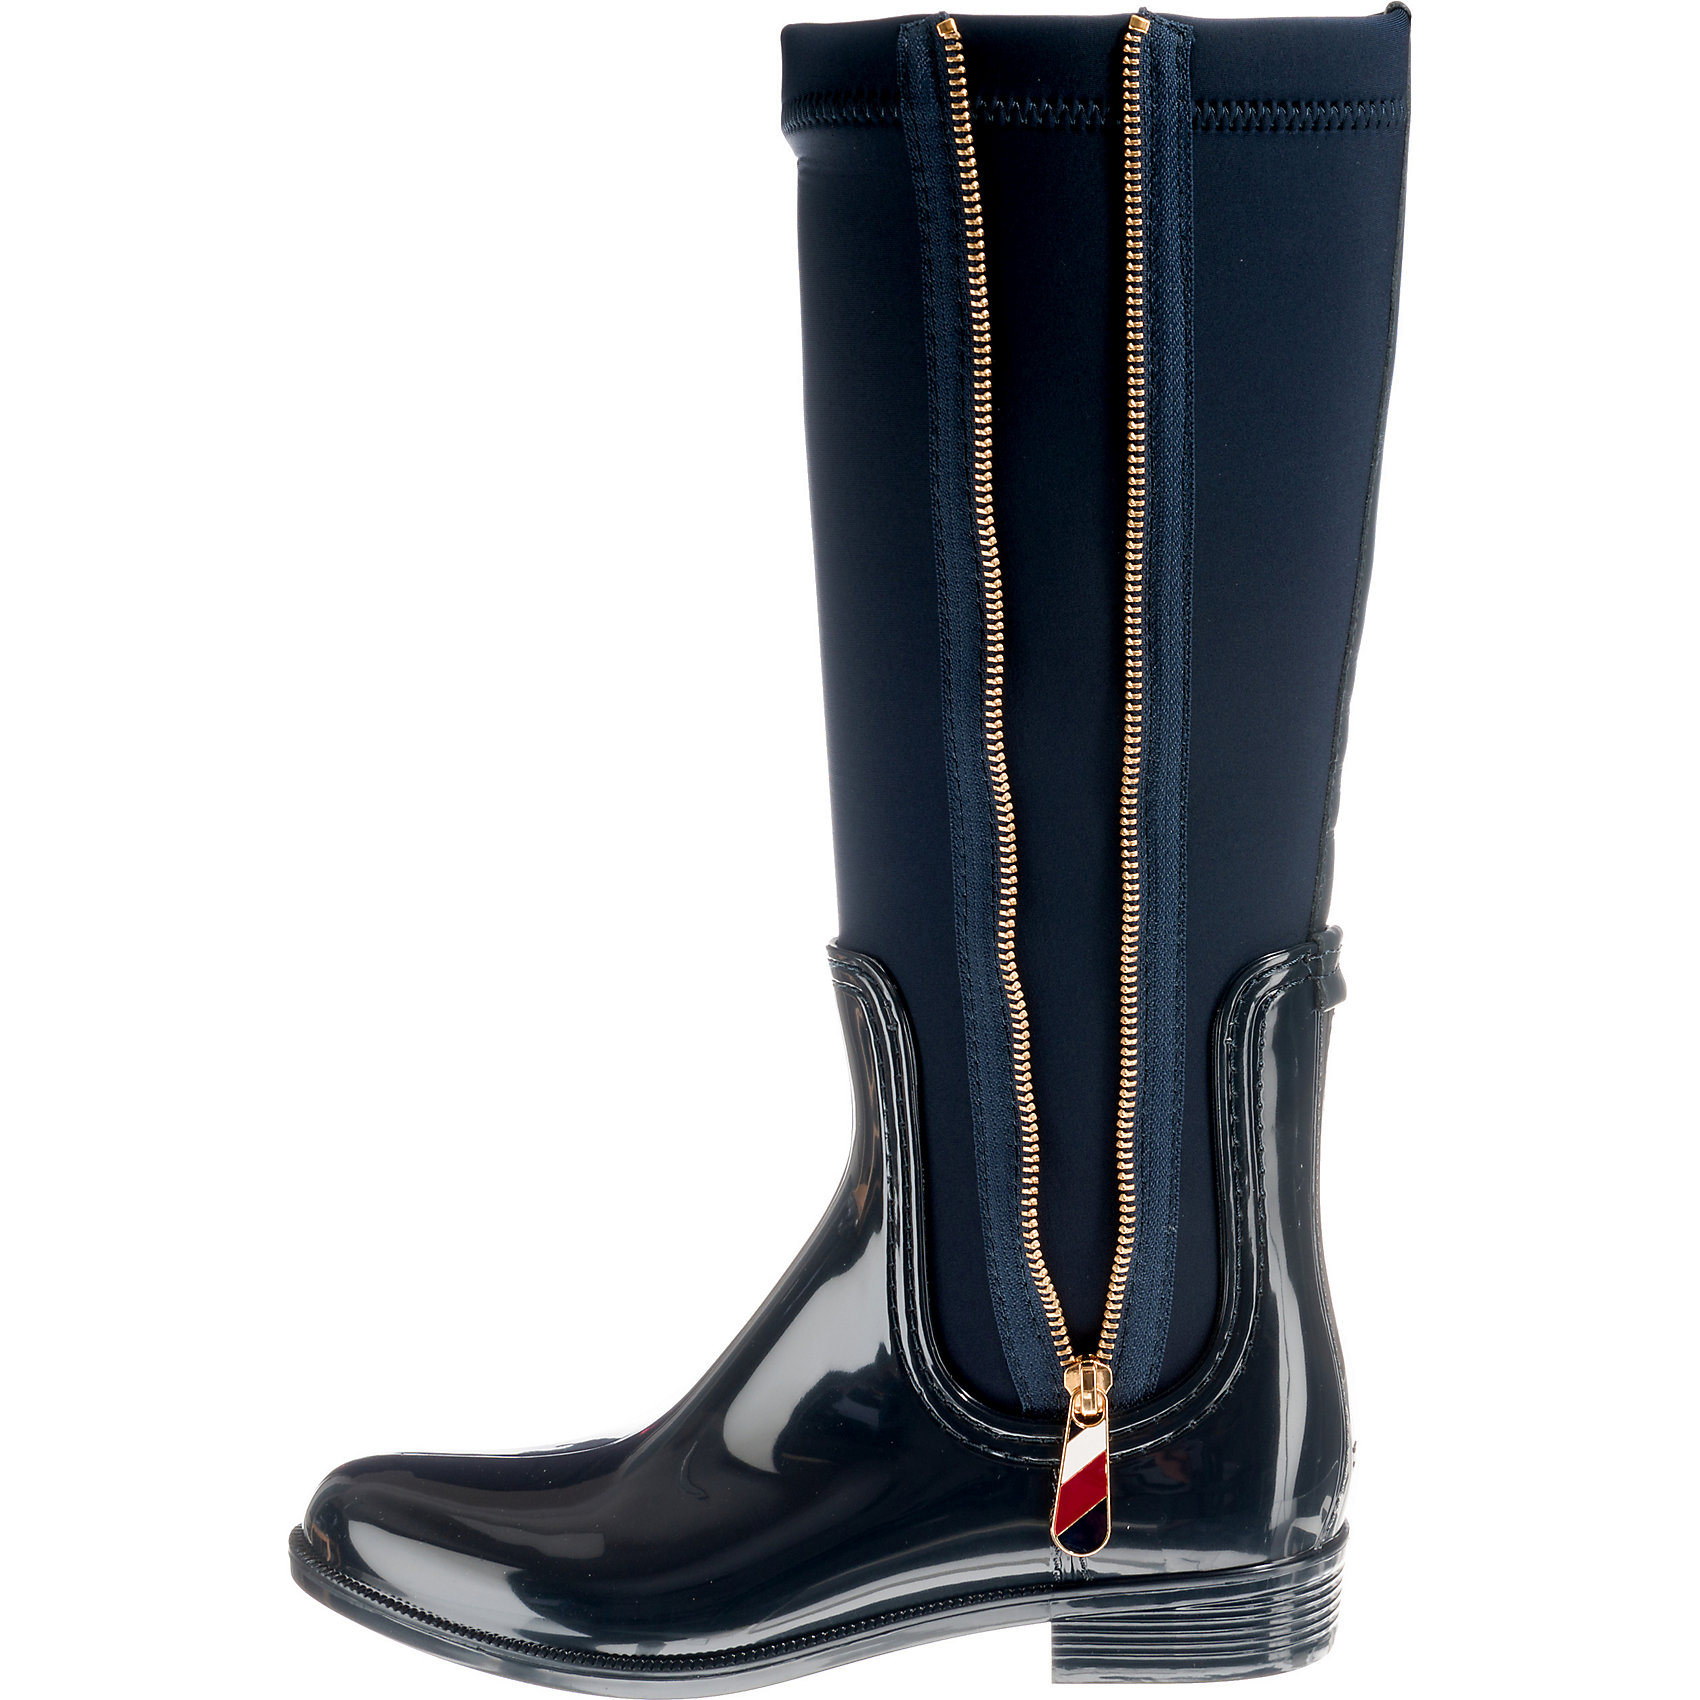 6890048f395be1 Neu TOMMY HILFIGER MATERIAL MIX LONG RAIN BOOT Gummistiefel 8862229 ...